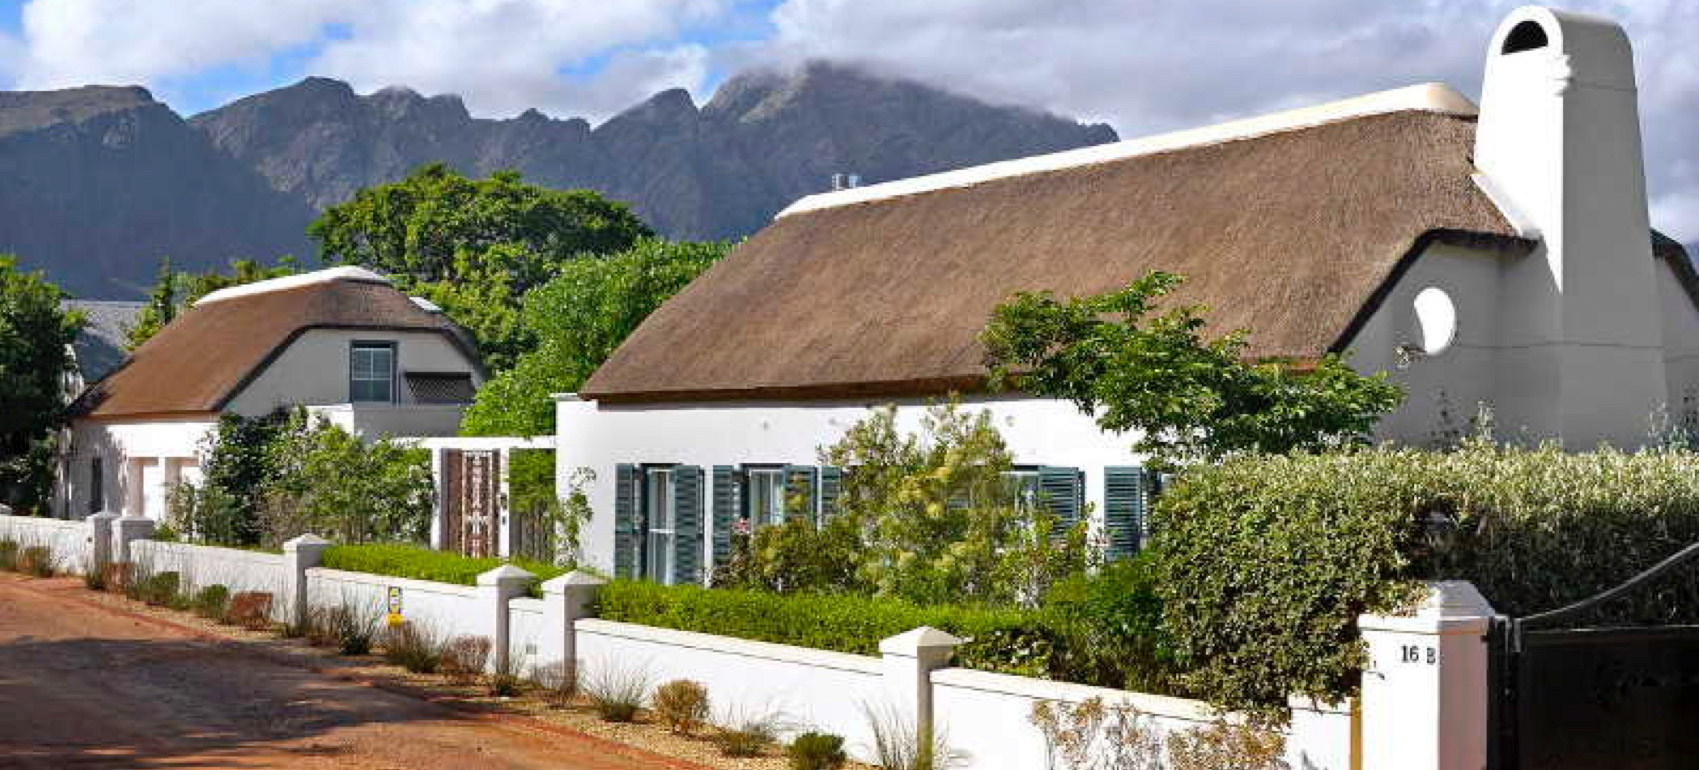 16-cabriere-street-gallery-06